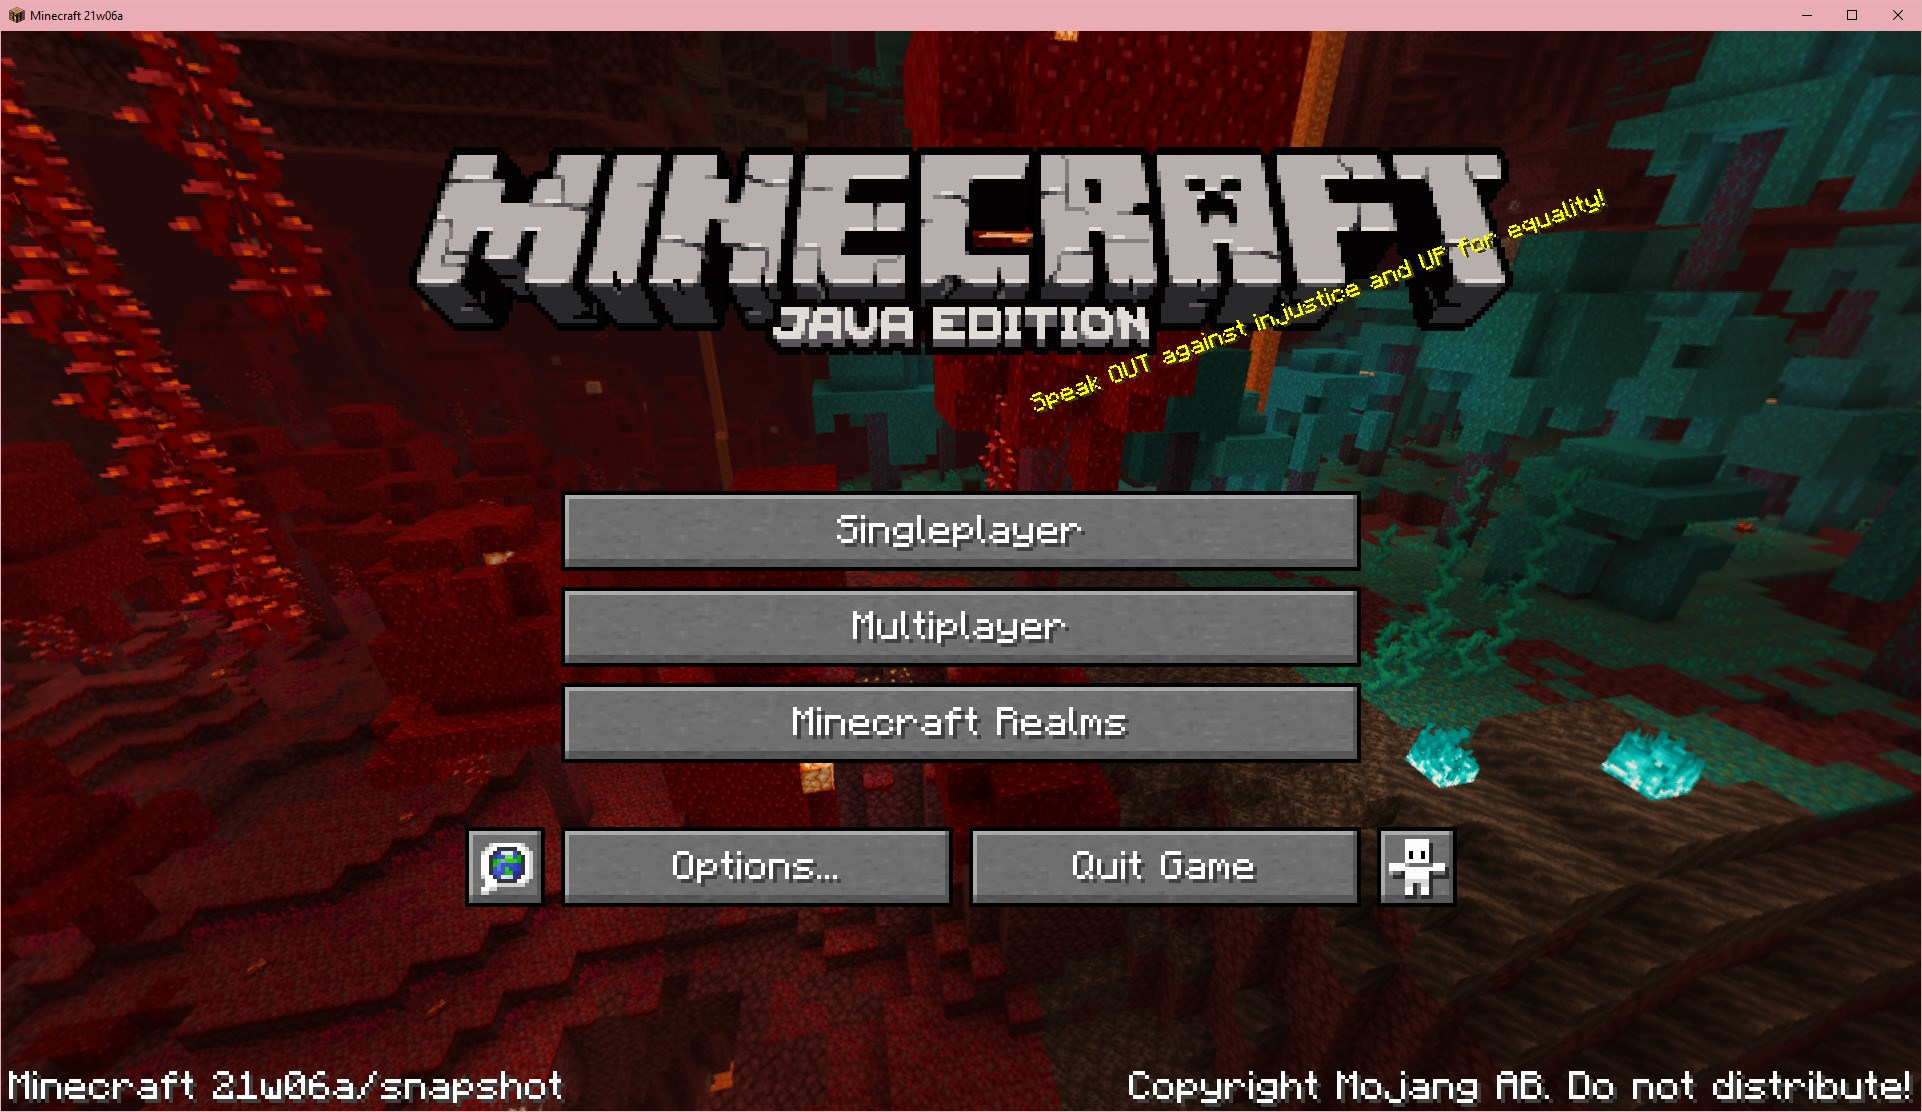 Minecraft 1.17 Caves & Cliffs Update Title Screen